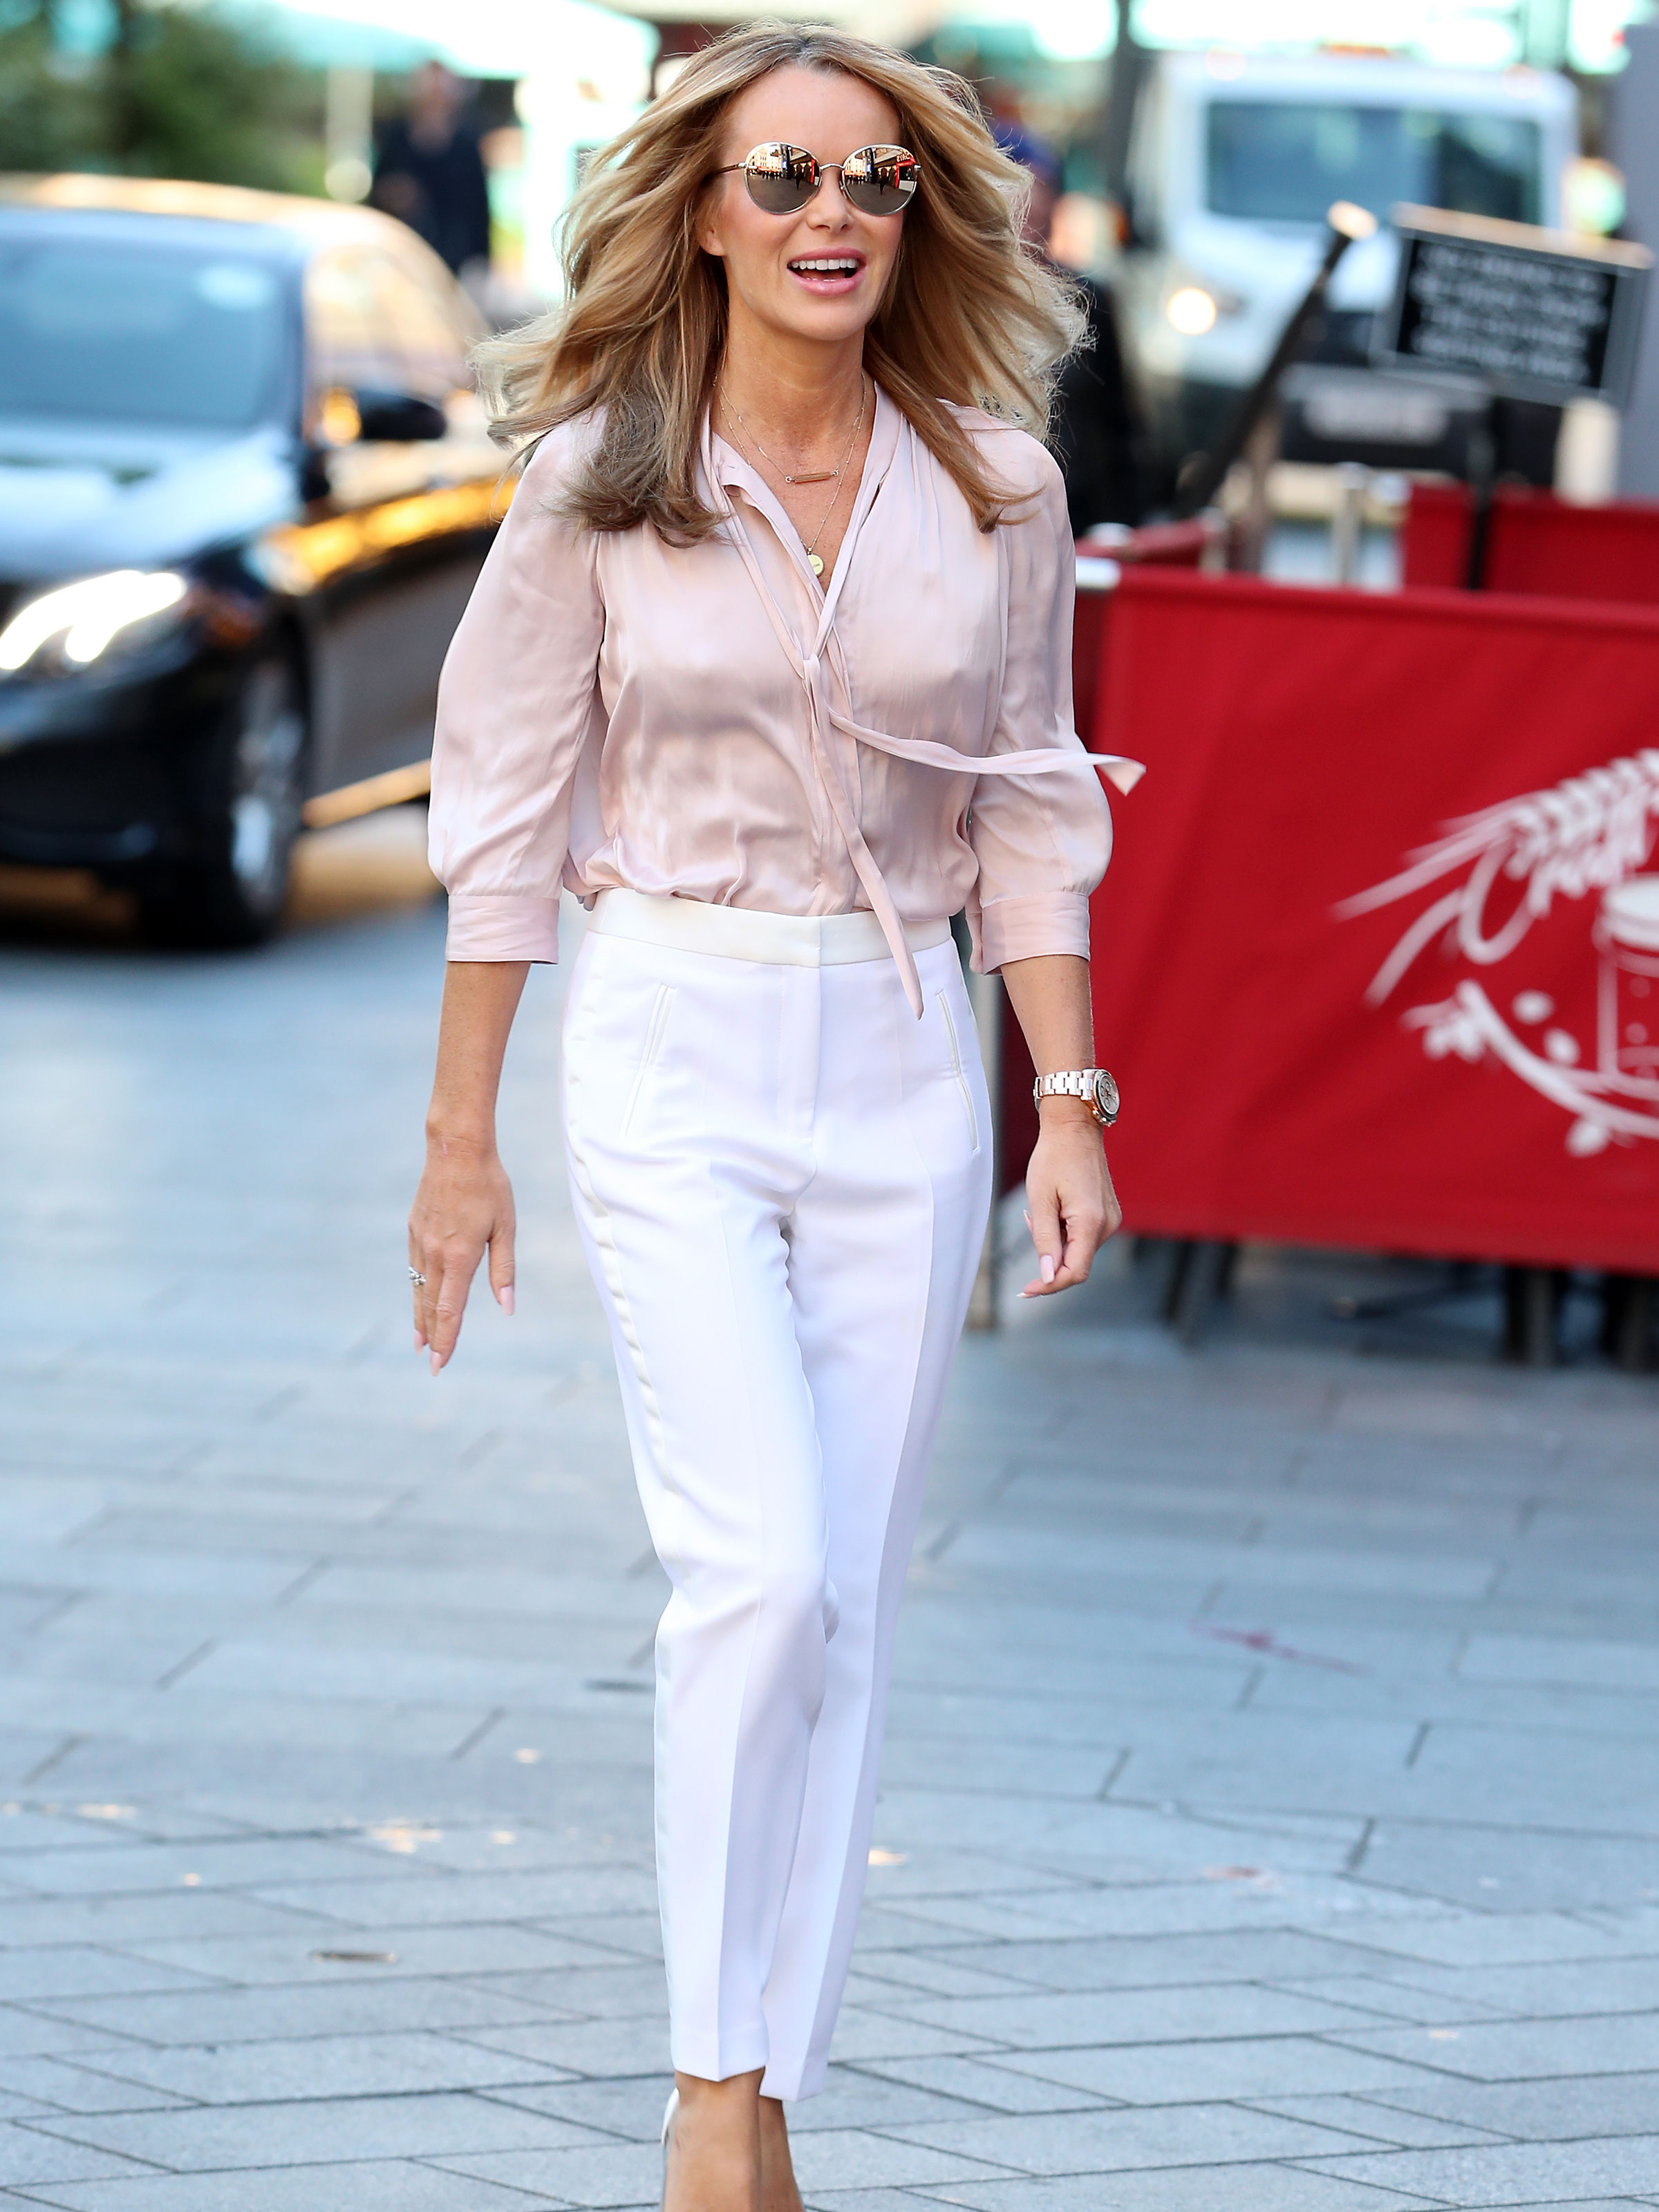 Amanda Holden reveals she 'preserves her dignity' by never doing THIS in public